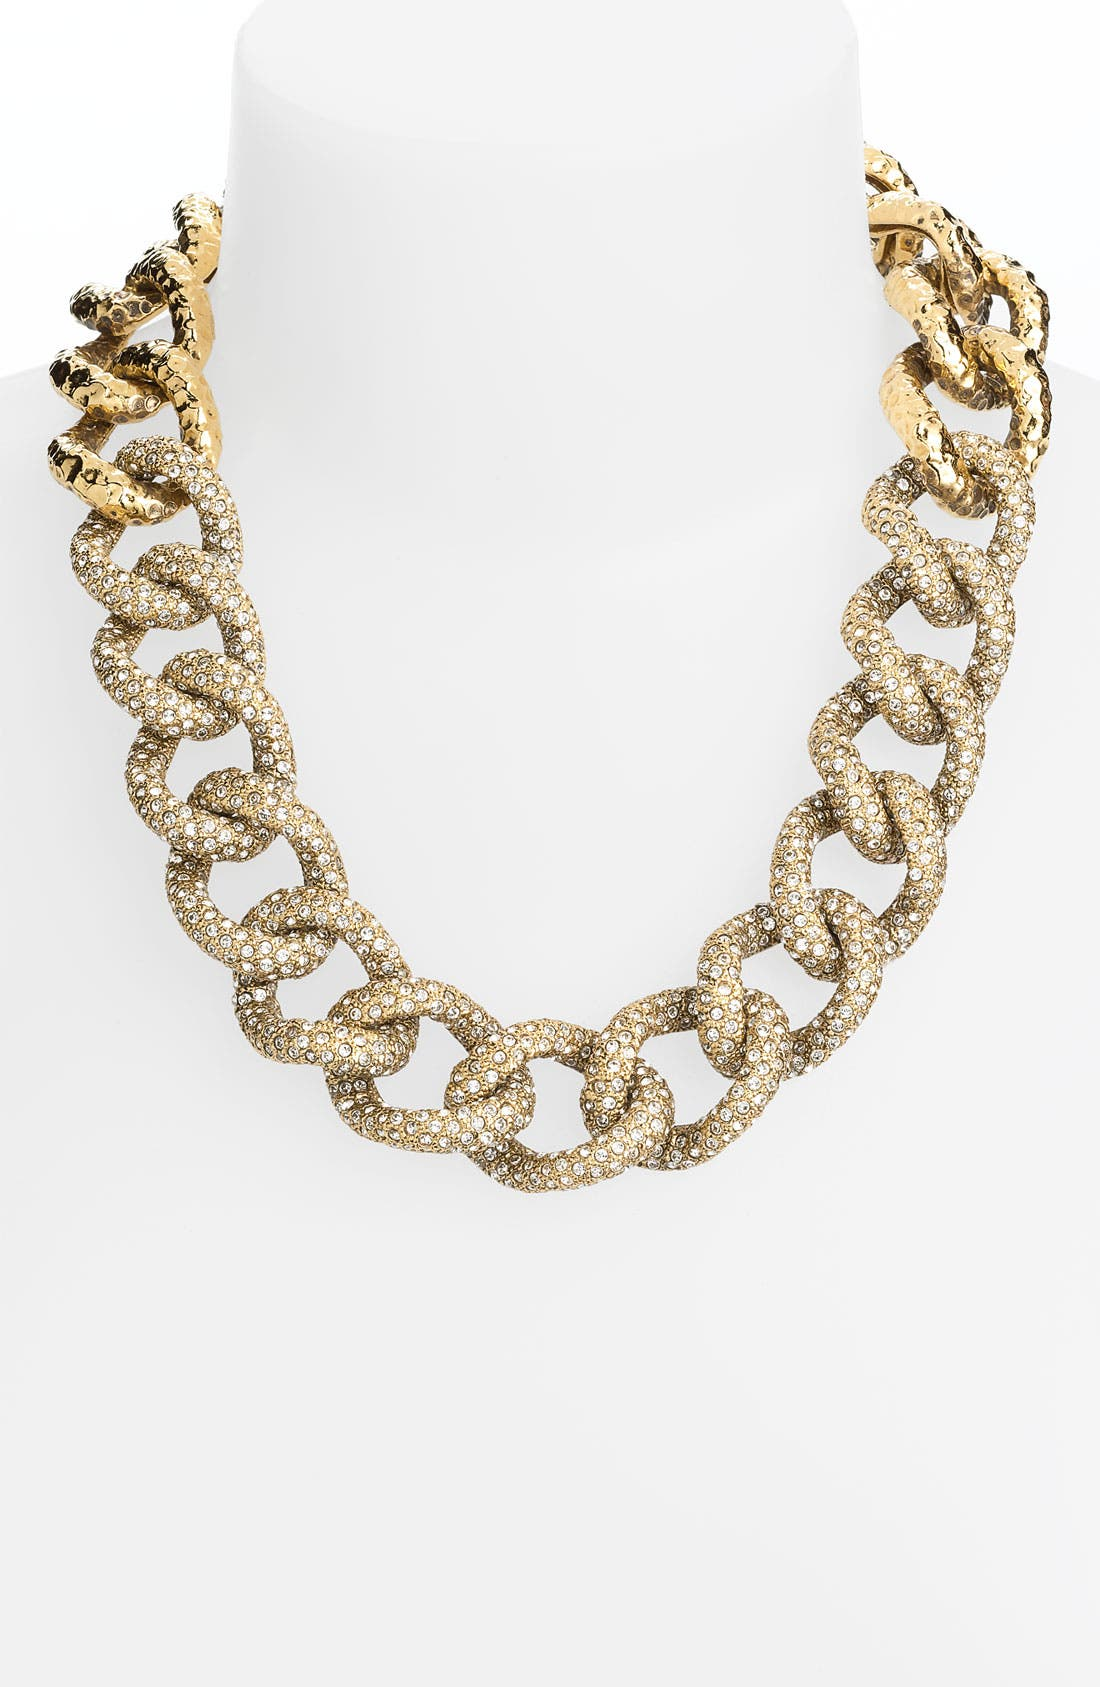 Main Image - St. John Collection Antique Gold & Crystal Necklace